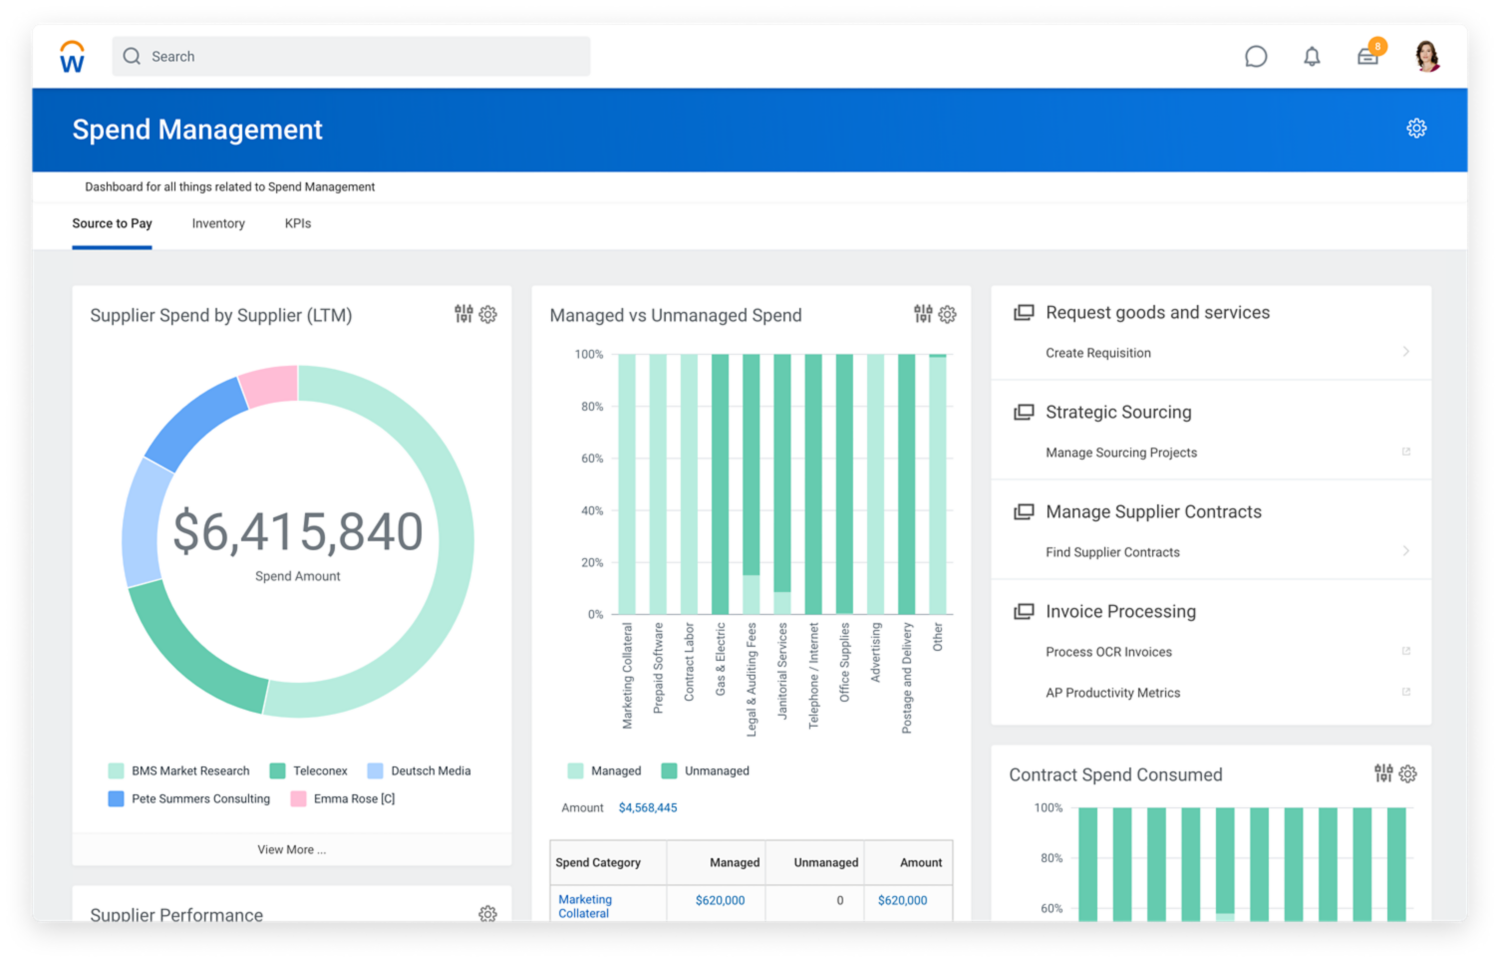 Cloud spend management dashboard showing graphs for supplier spend by supplier and managed versus unmanaged spend.